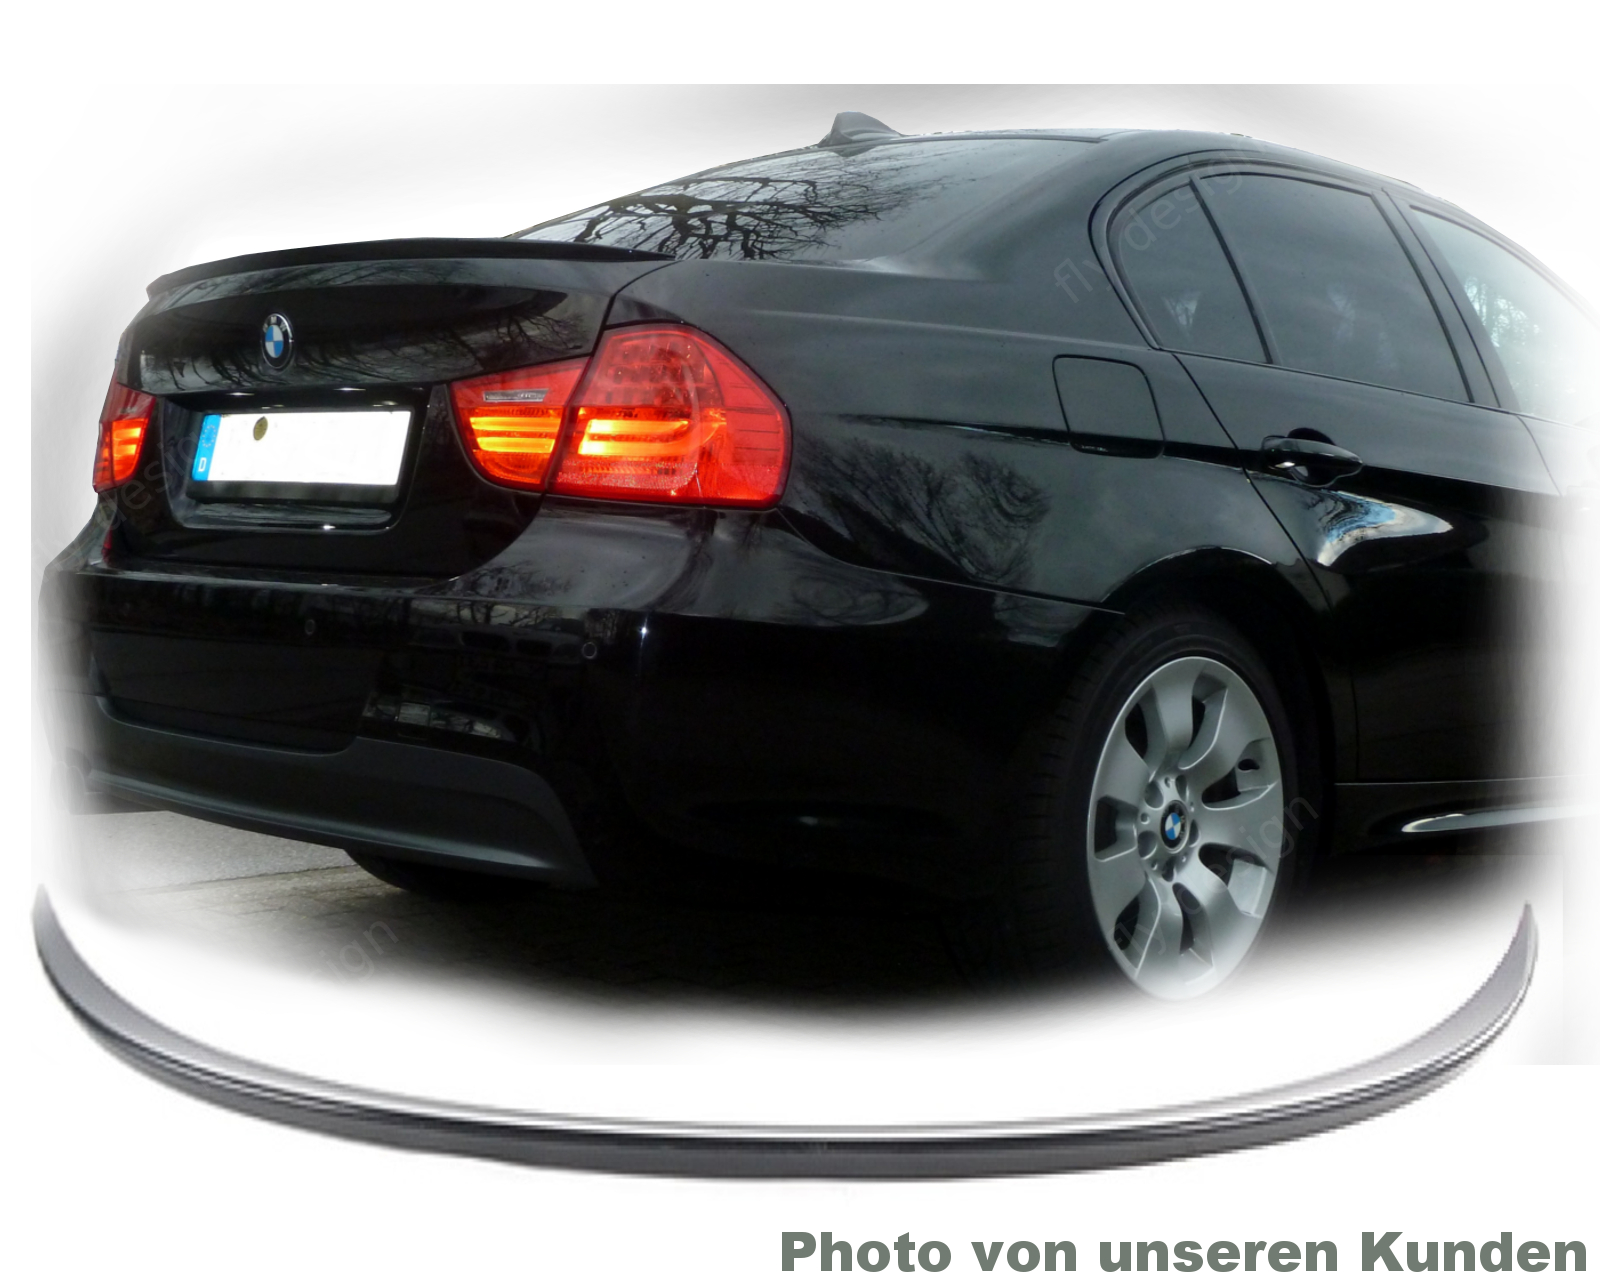 heckspoiler heckfl gel passend bmw e90 saphirschwarz 475 type m ebay. Black Bedroom Furniture Sets. Home Design Ideas